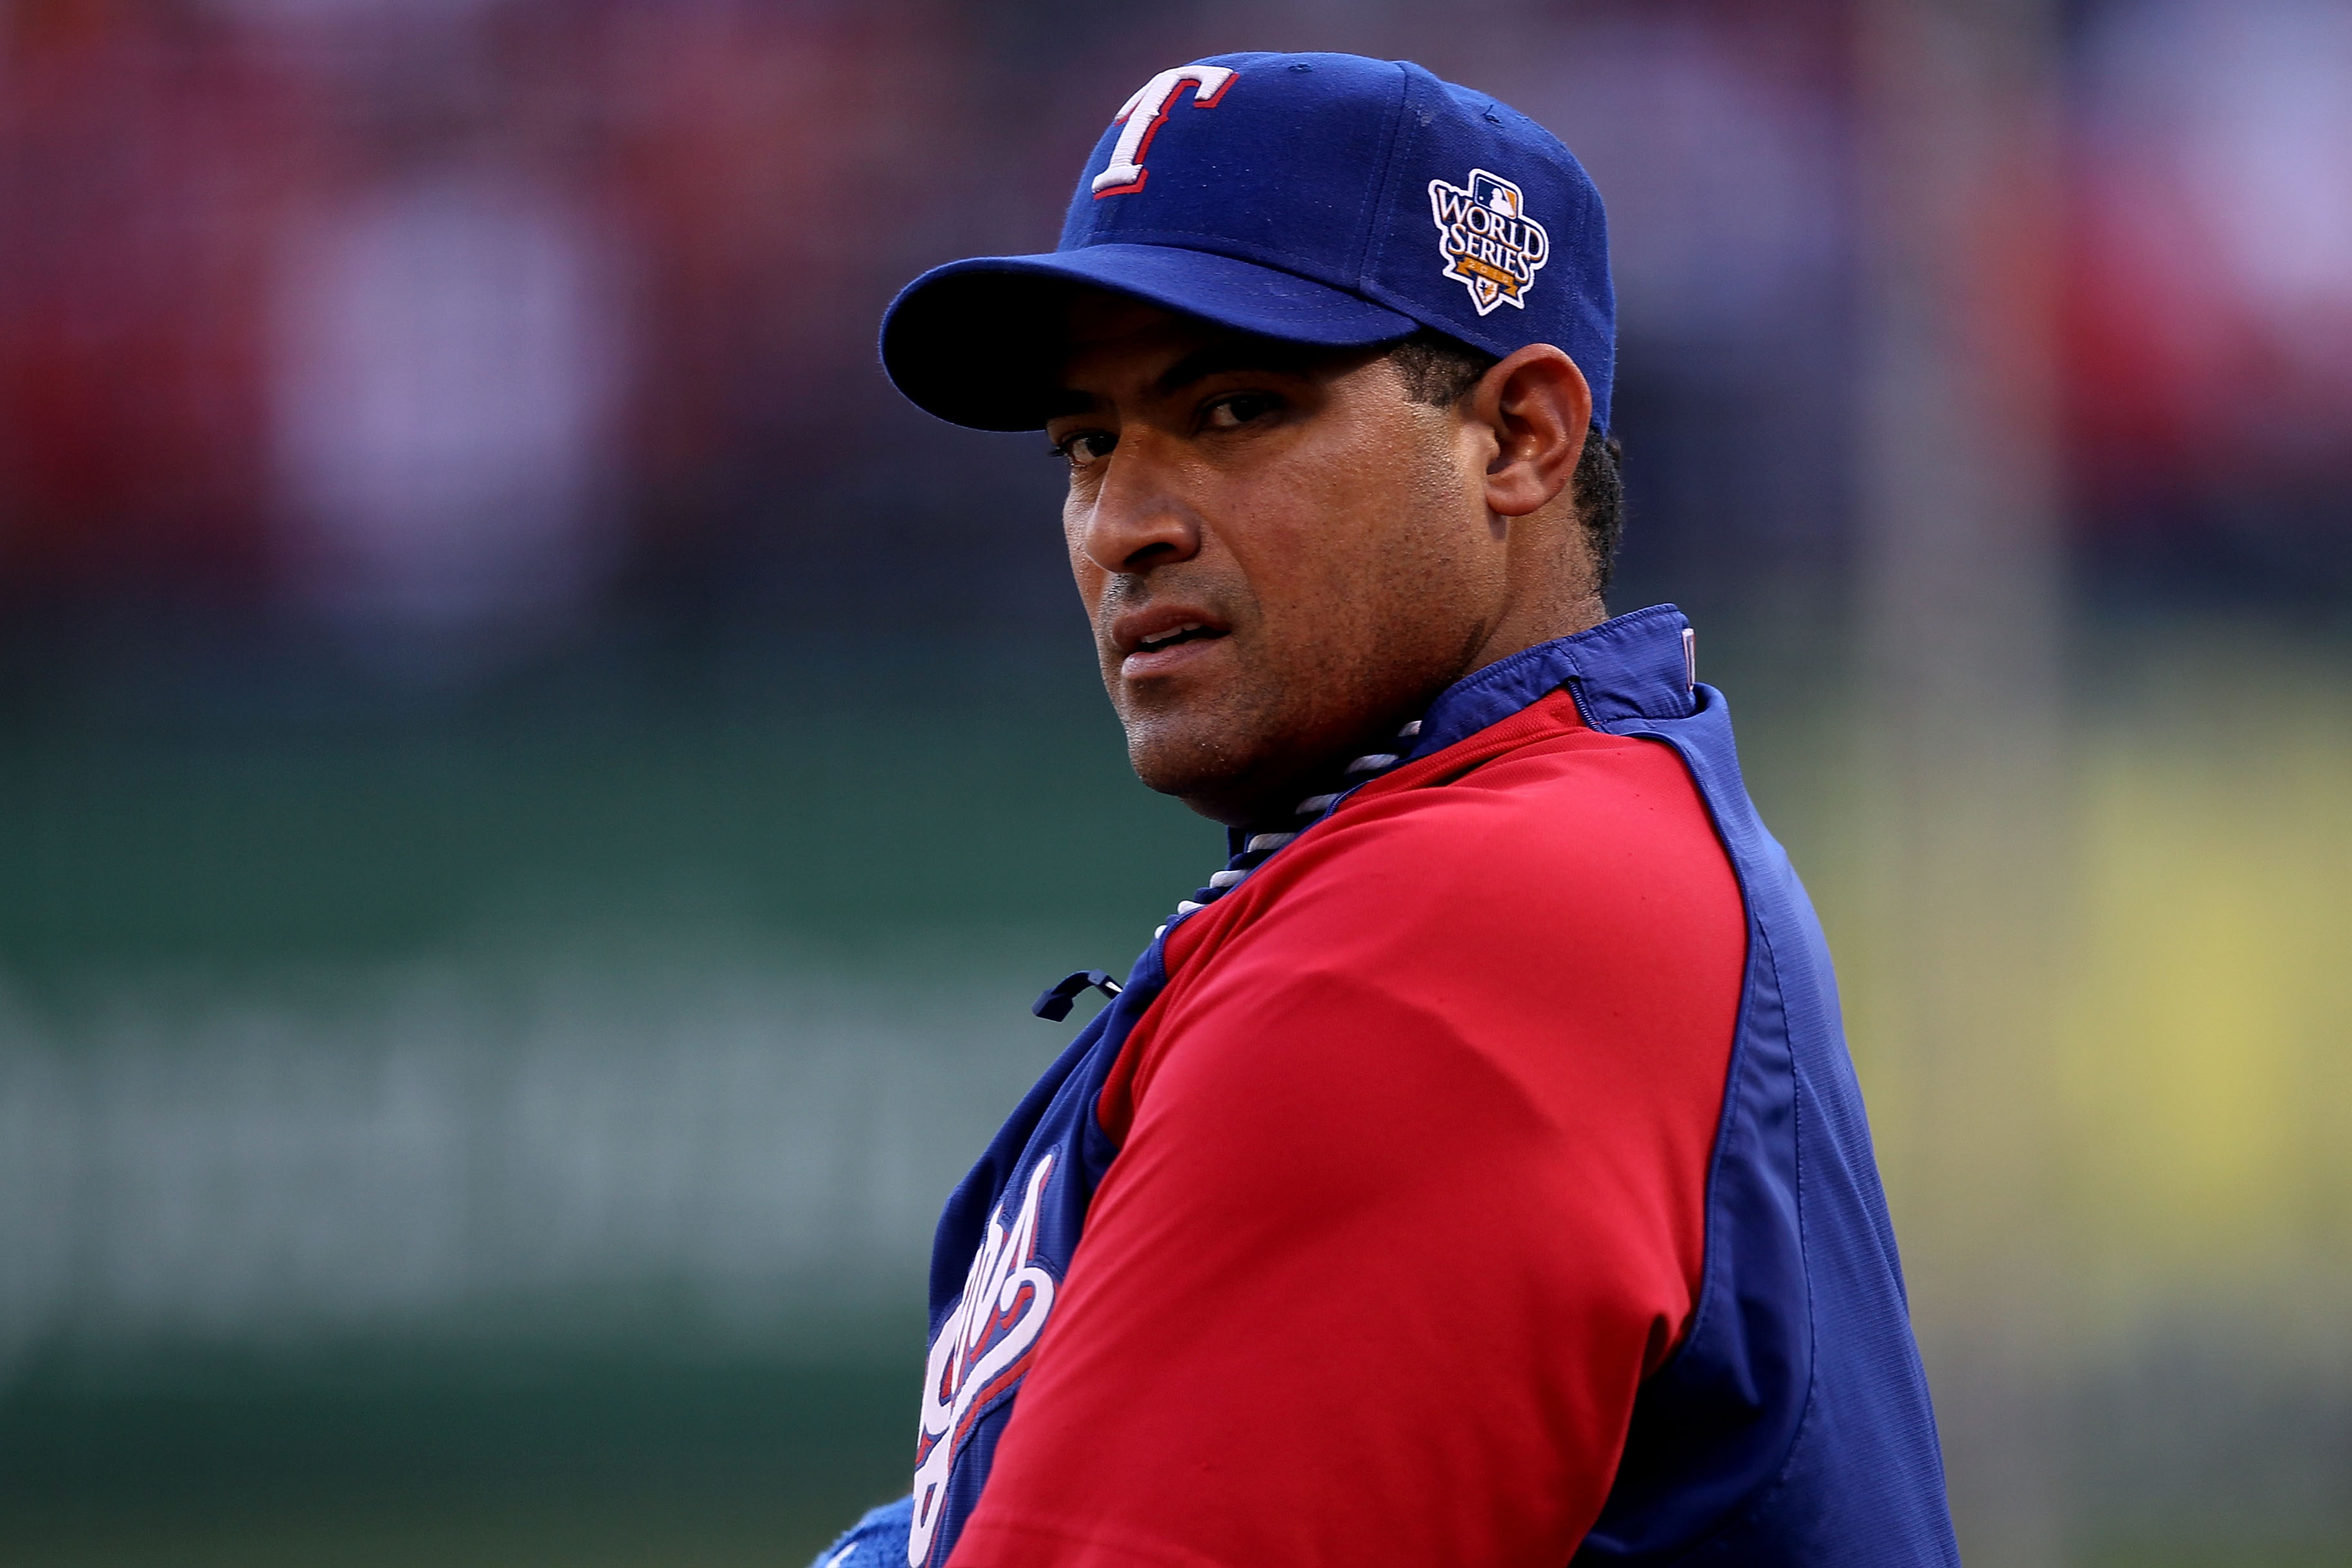 ARLINGTON, TX - OCTOBER 31:  Bengie Molina #11 of the Texas Rangers looks on during batting practice against the San Francisco Giants in Game Four of the 2010 MLB World Series at Rangers Ballpark in Arlington on October 31, 2010 in Arlington, Texas.  (Pho